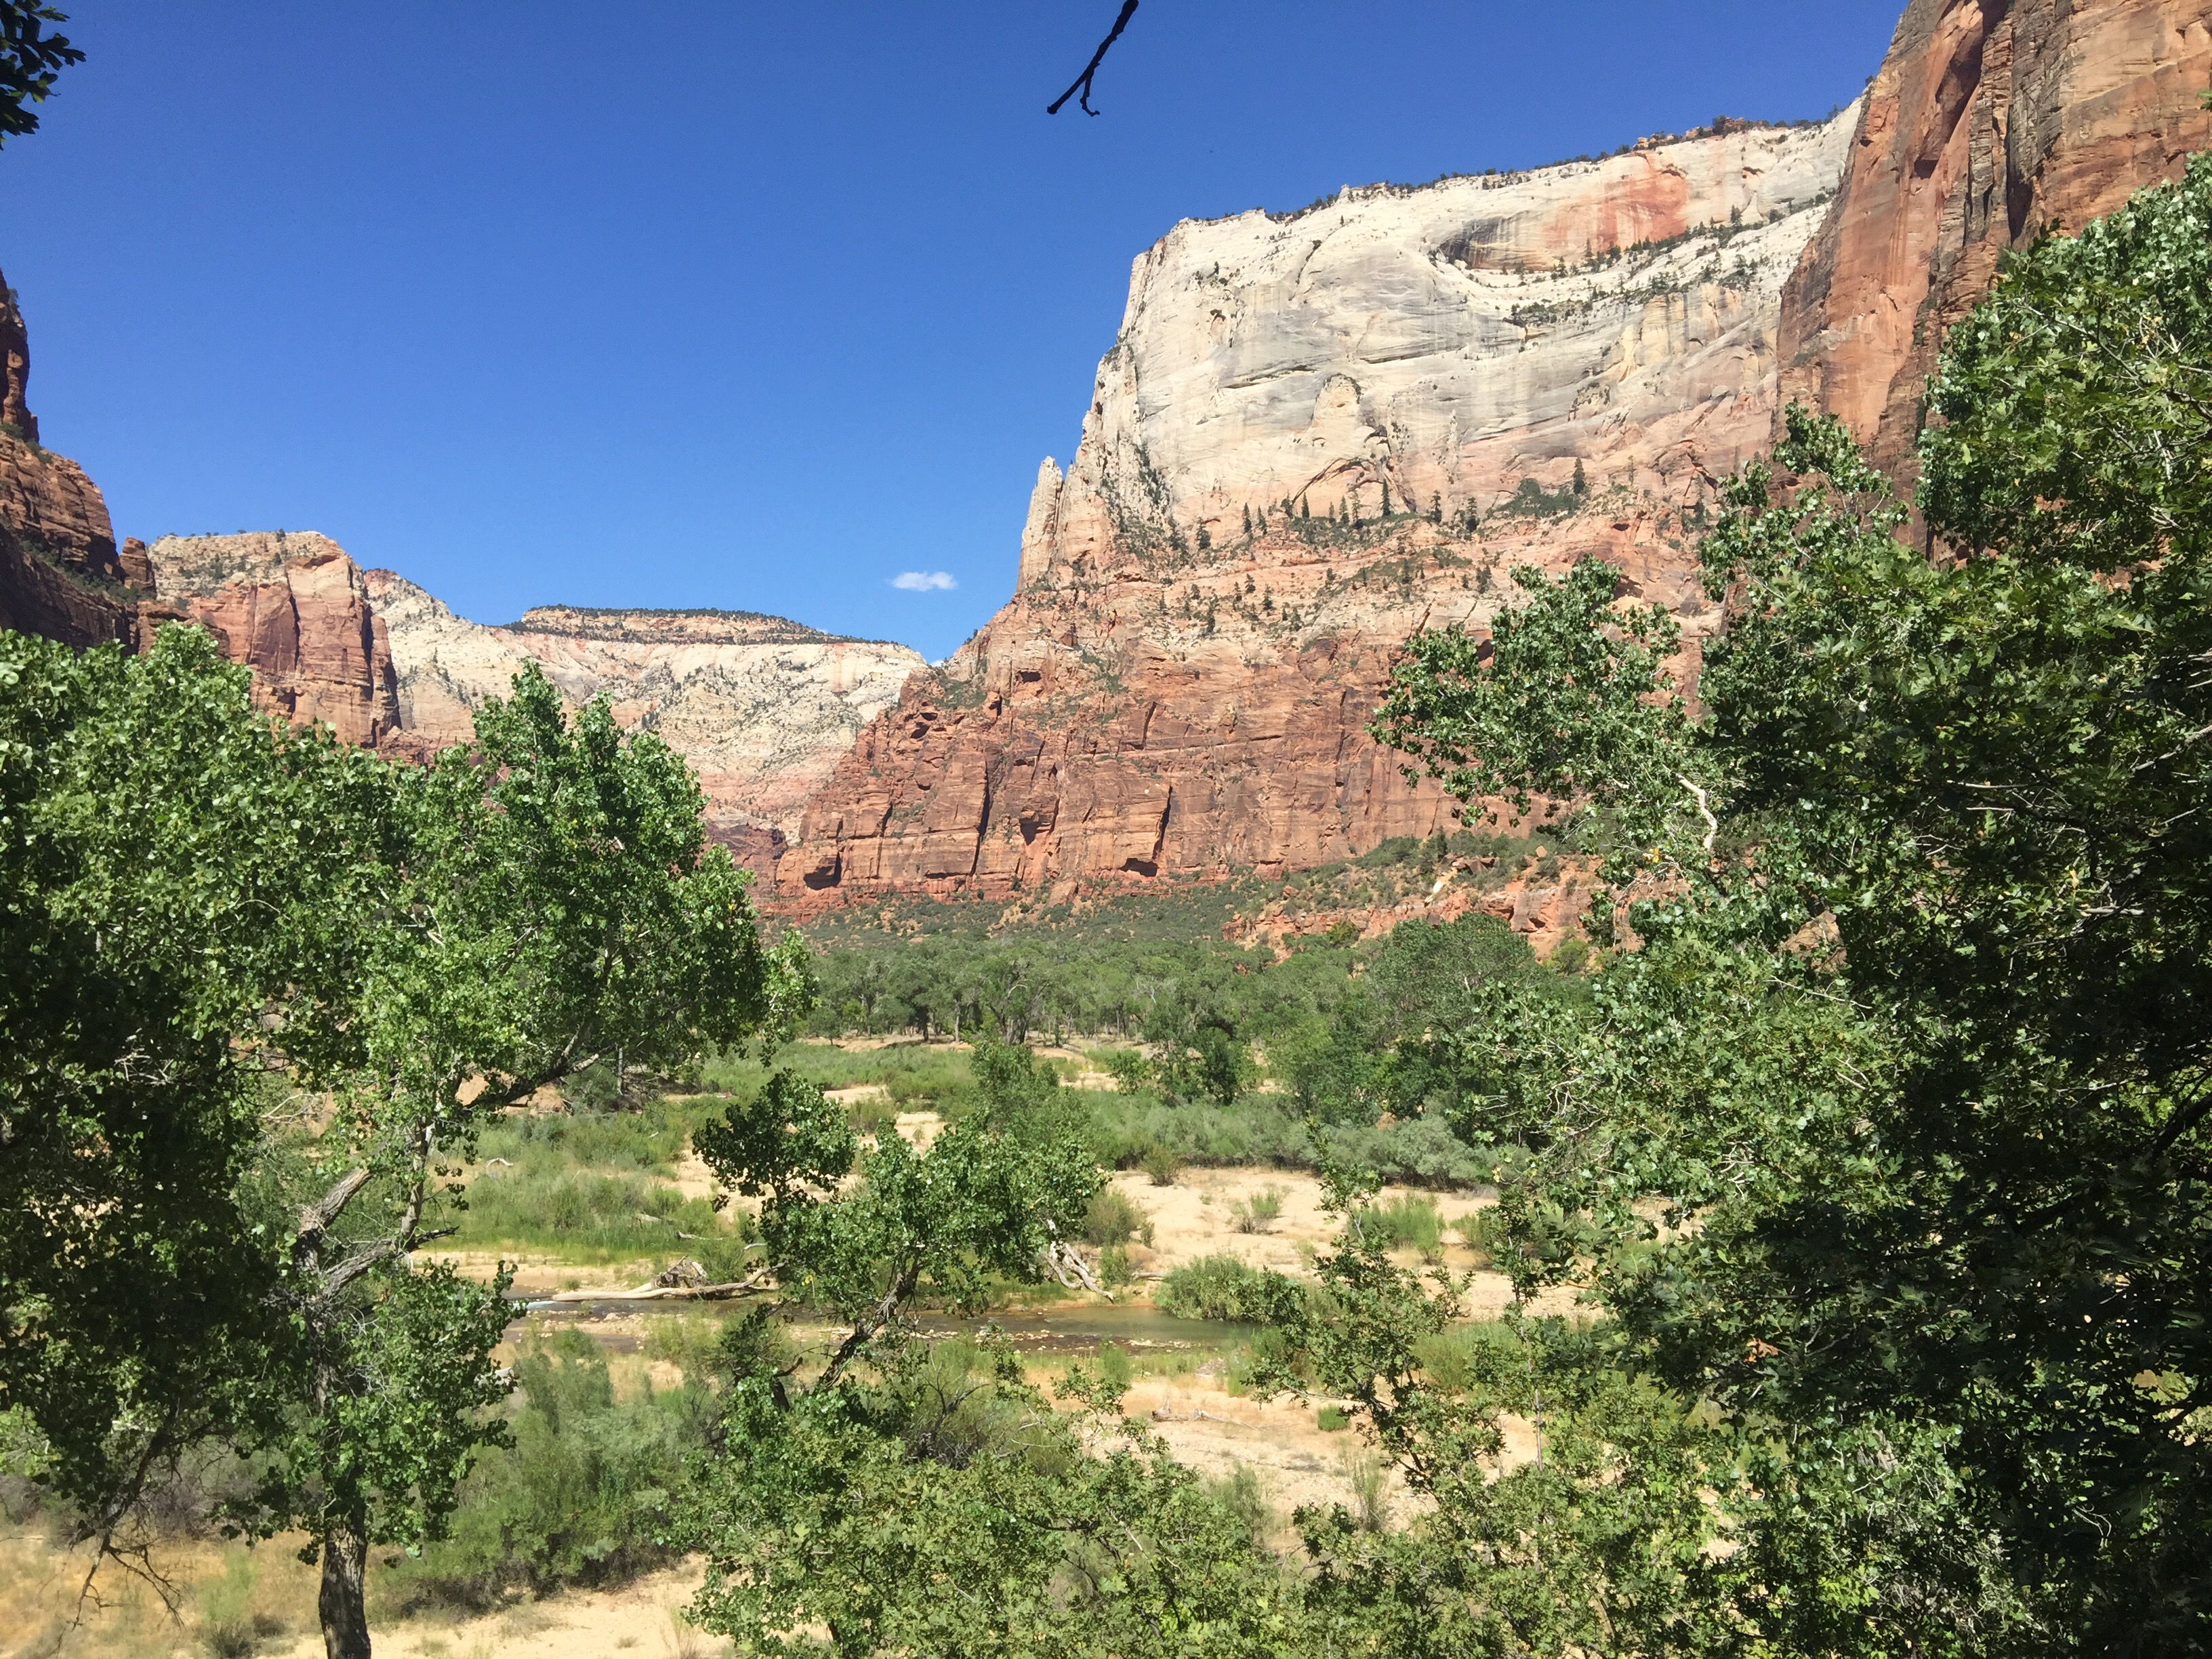 TheMouse sur YouTube: TheMouse au Farwest #13 Tropic – Zion park – Emerald pools – St George